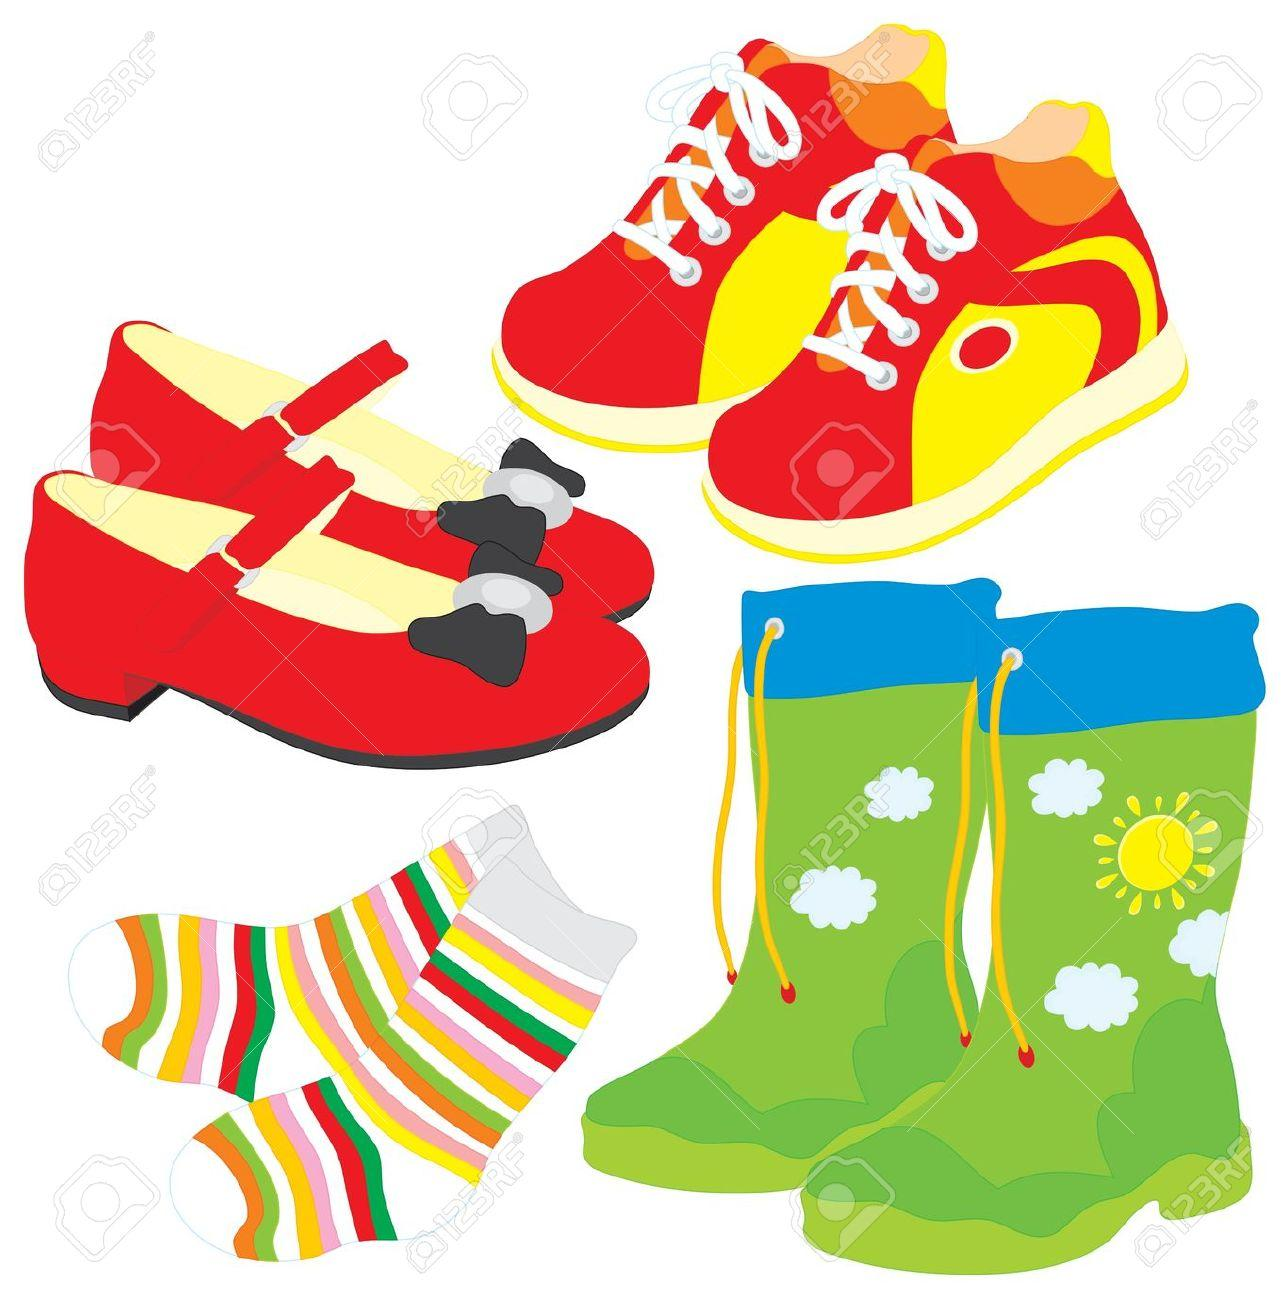 Put on socks and shoes kids clipart clip art library stock Socks And Shoes Clipart - Free Clipart clip art library stock